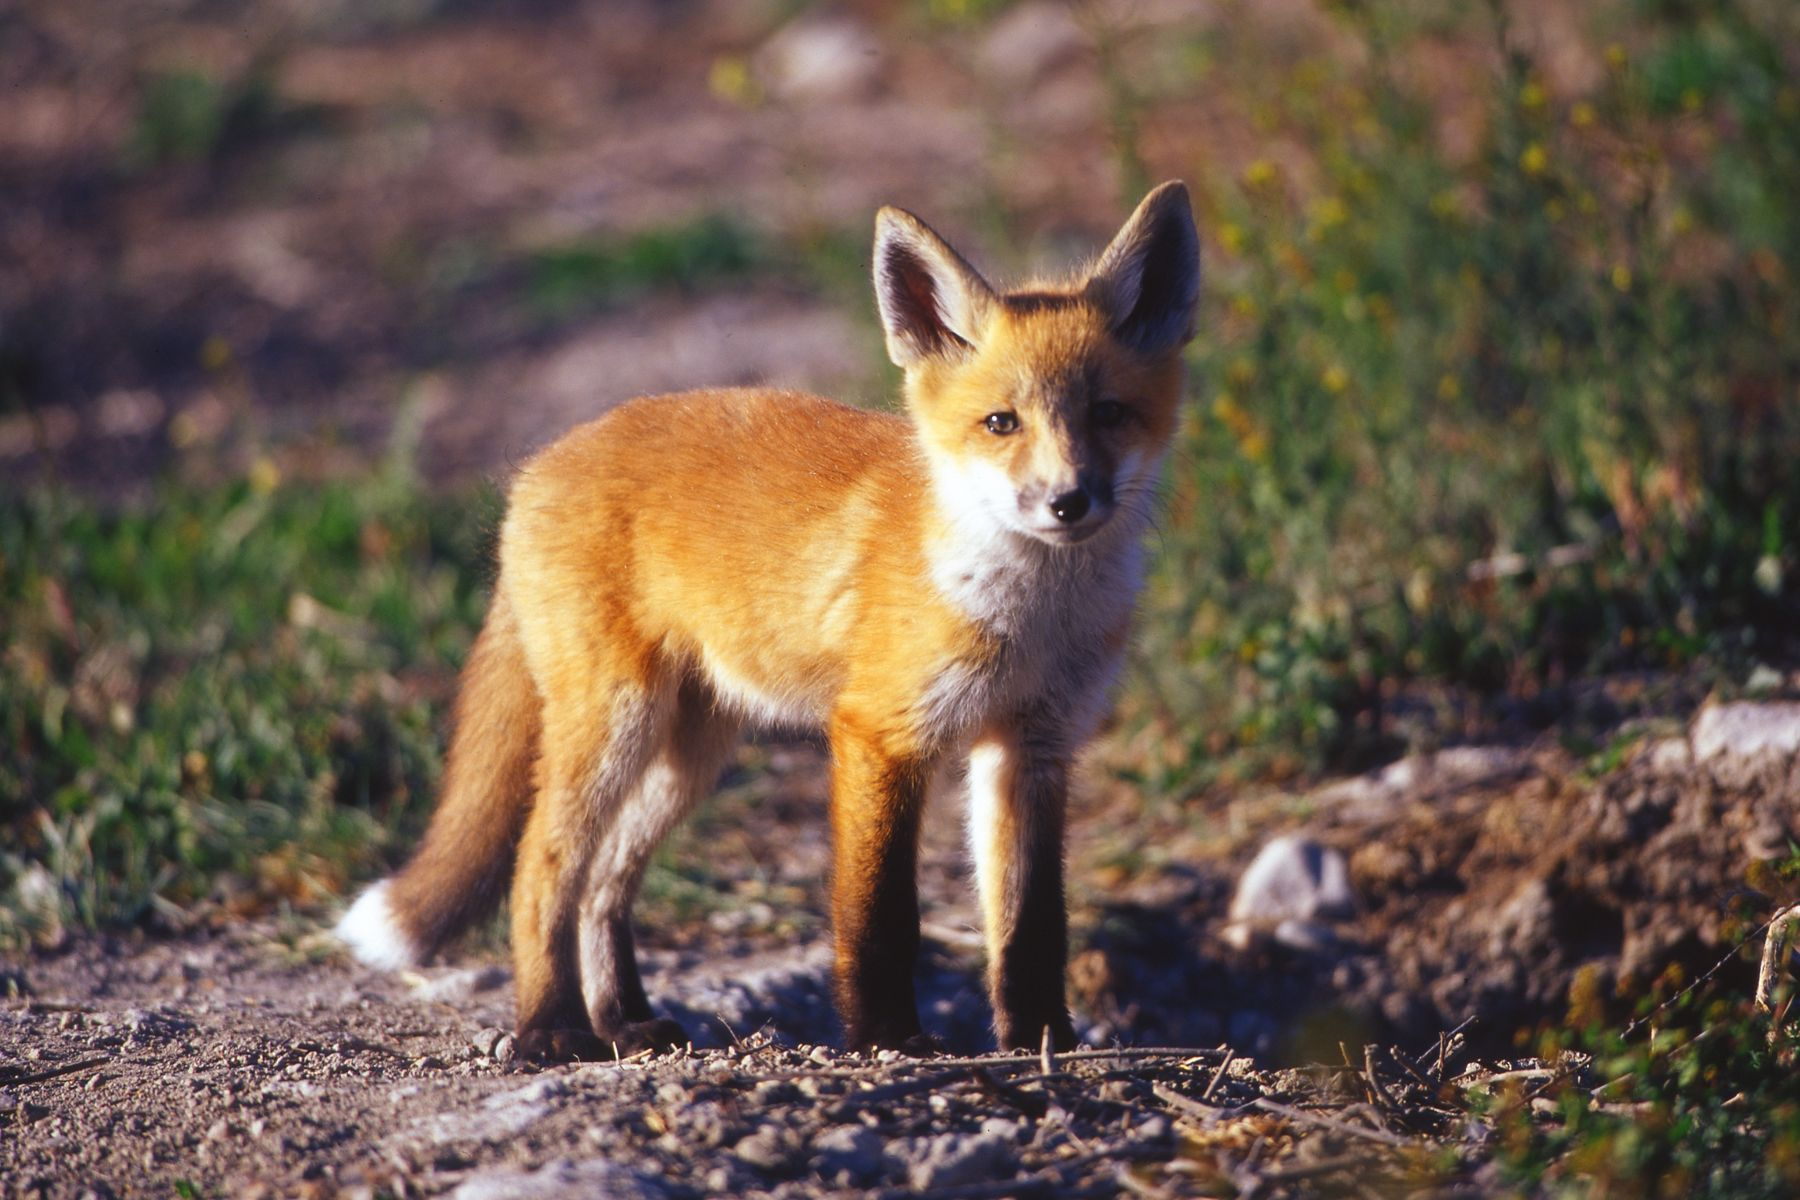 The Red Fox (Vulpes vulpes) is a small canid native to